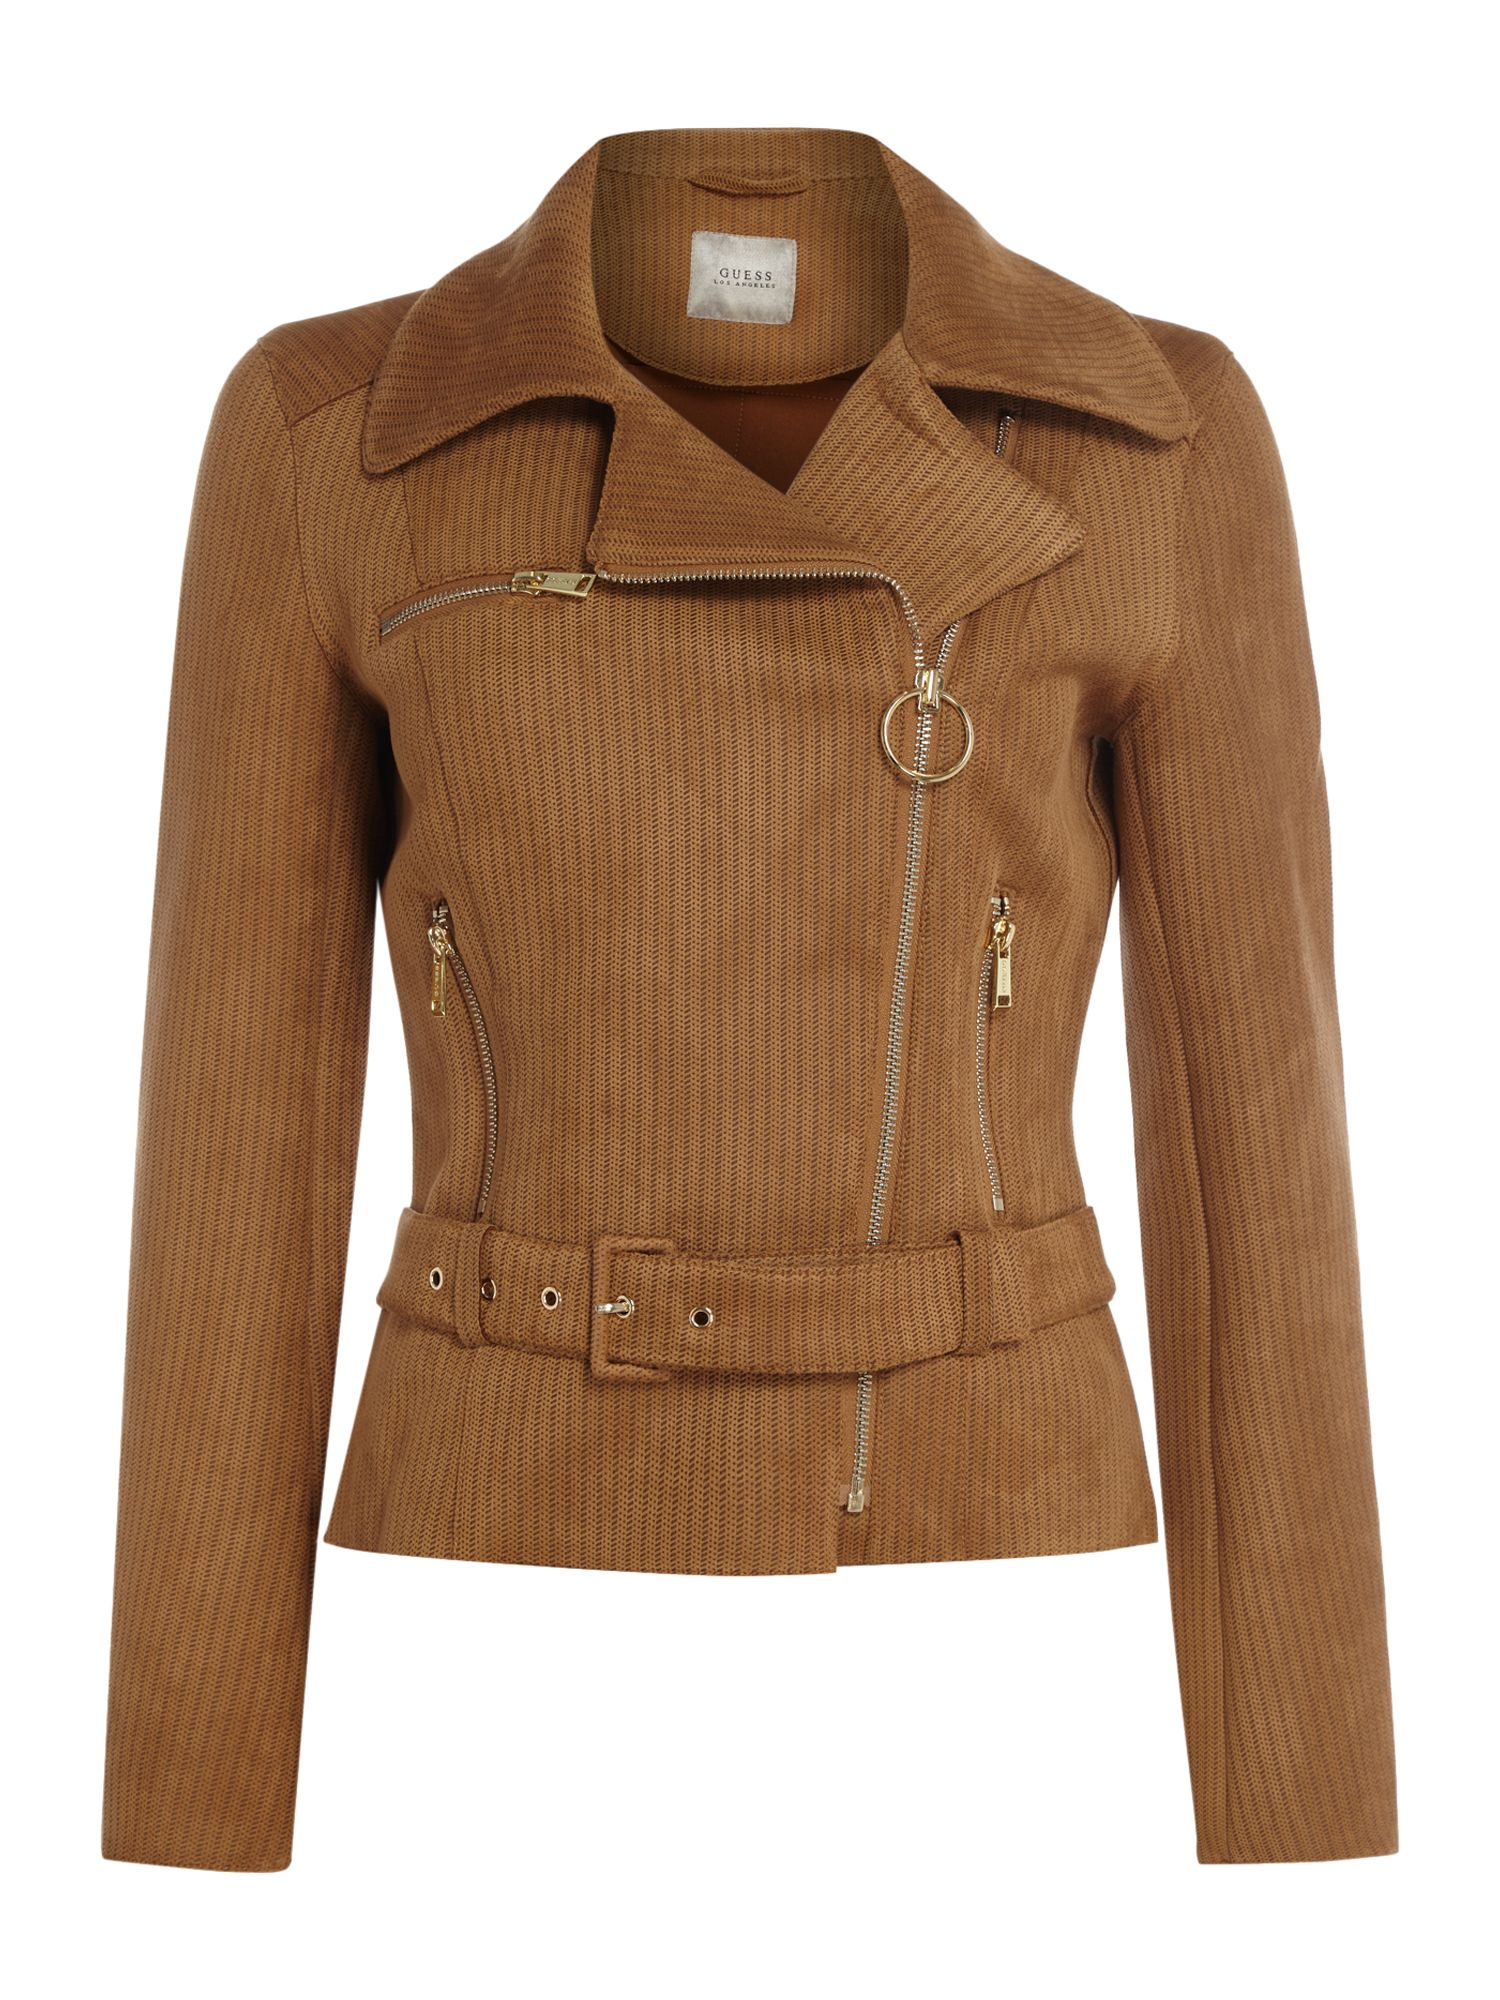 Guess Marlene Jacket in doeskin, Tan